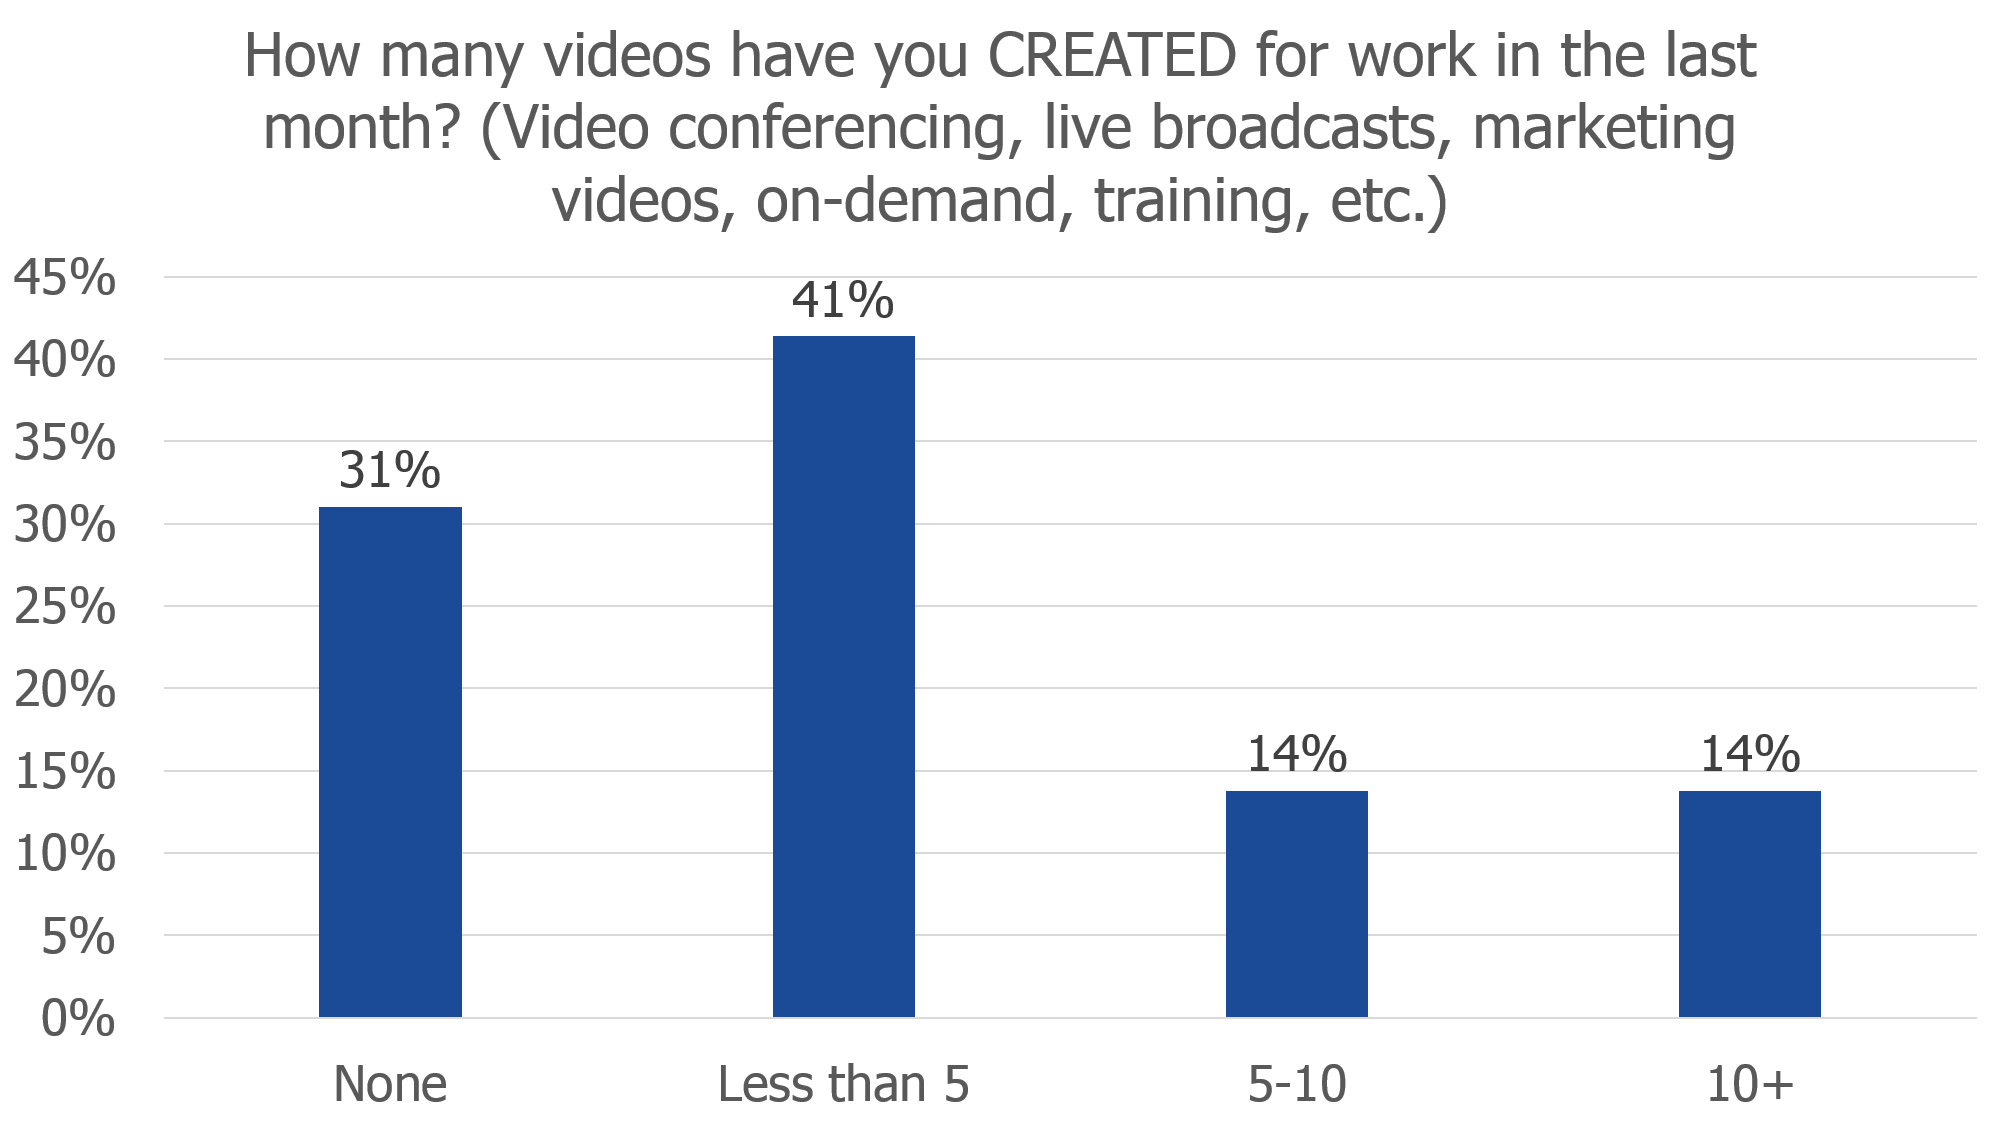 number of videos created for work